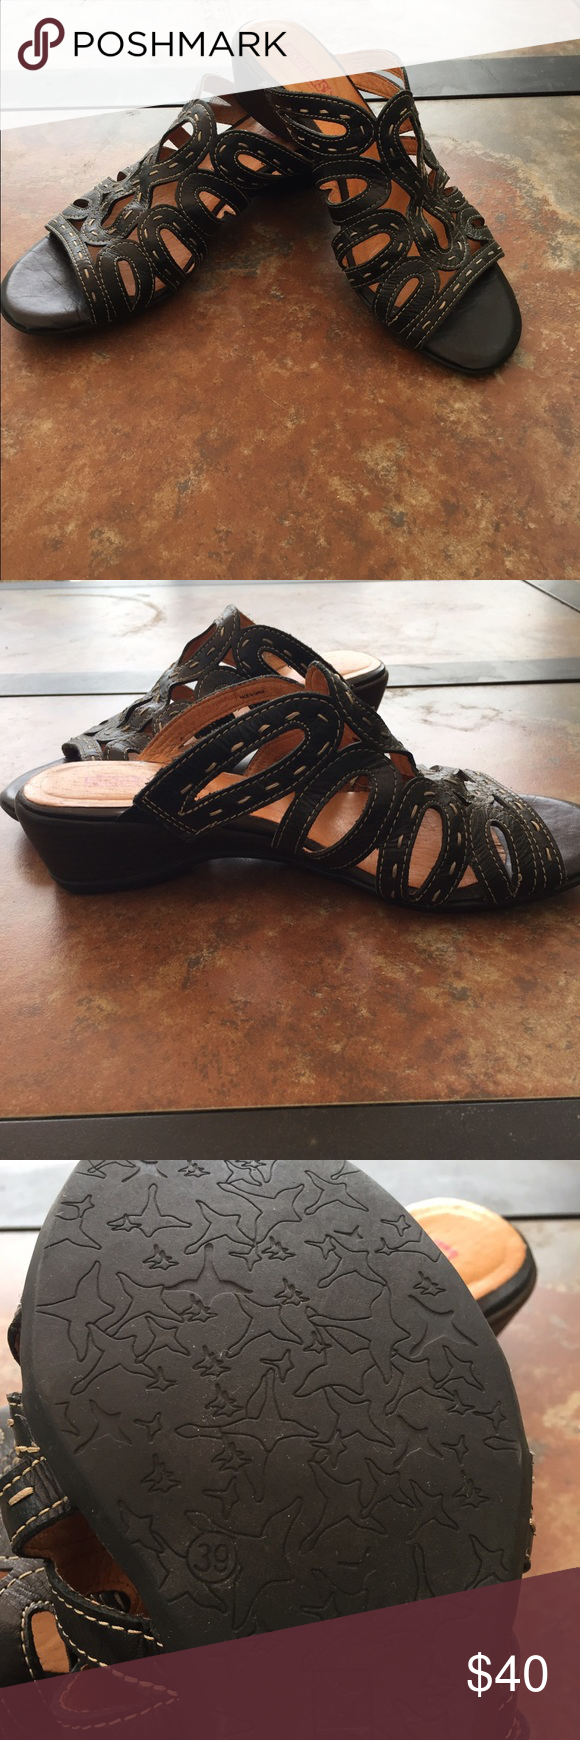 Pikolinos Black Leather Sandal Super cute leather cut out sandal. Great to go with jeans or dresses PIKOLINOS Shoes Sandals